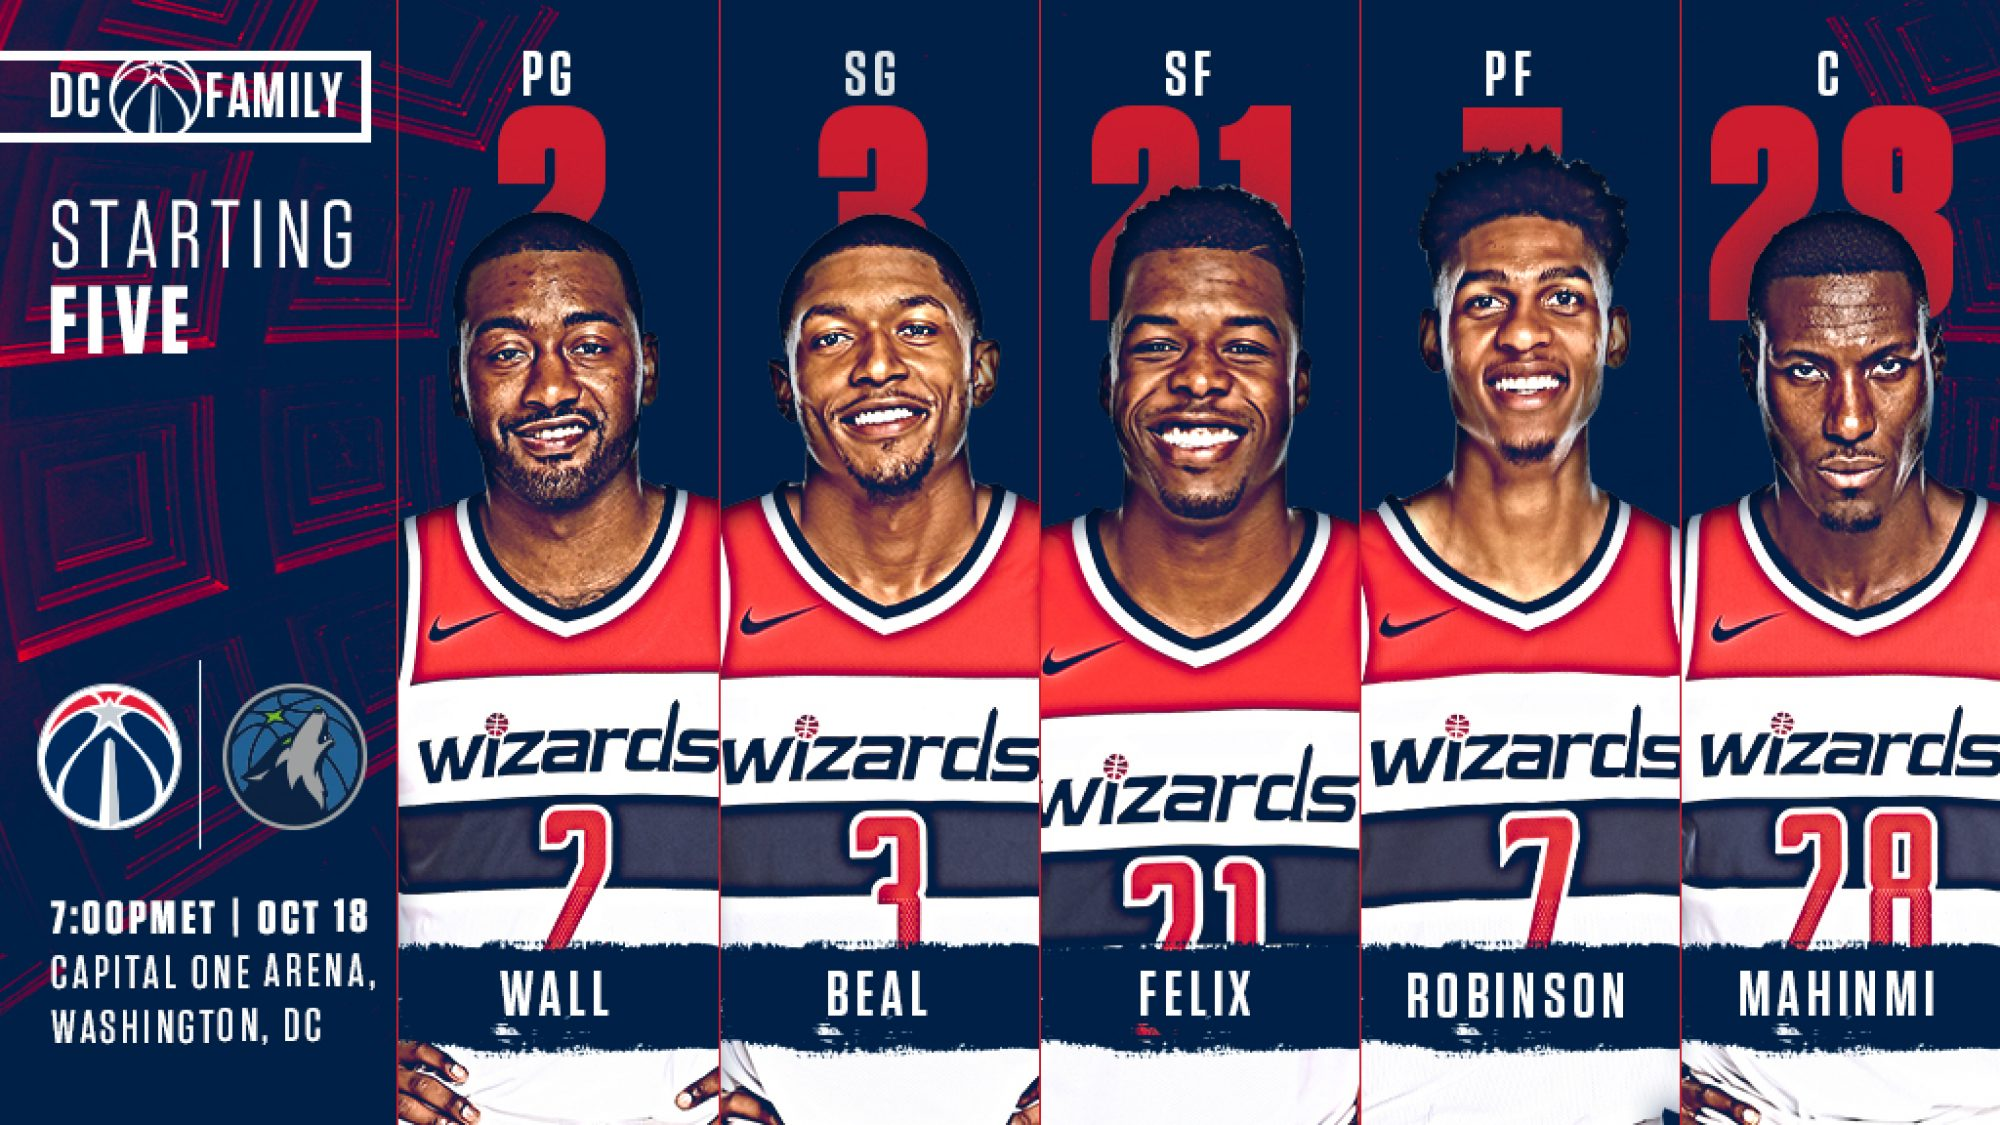 washington_wizards_lineup_horizontal_02